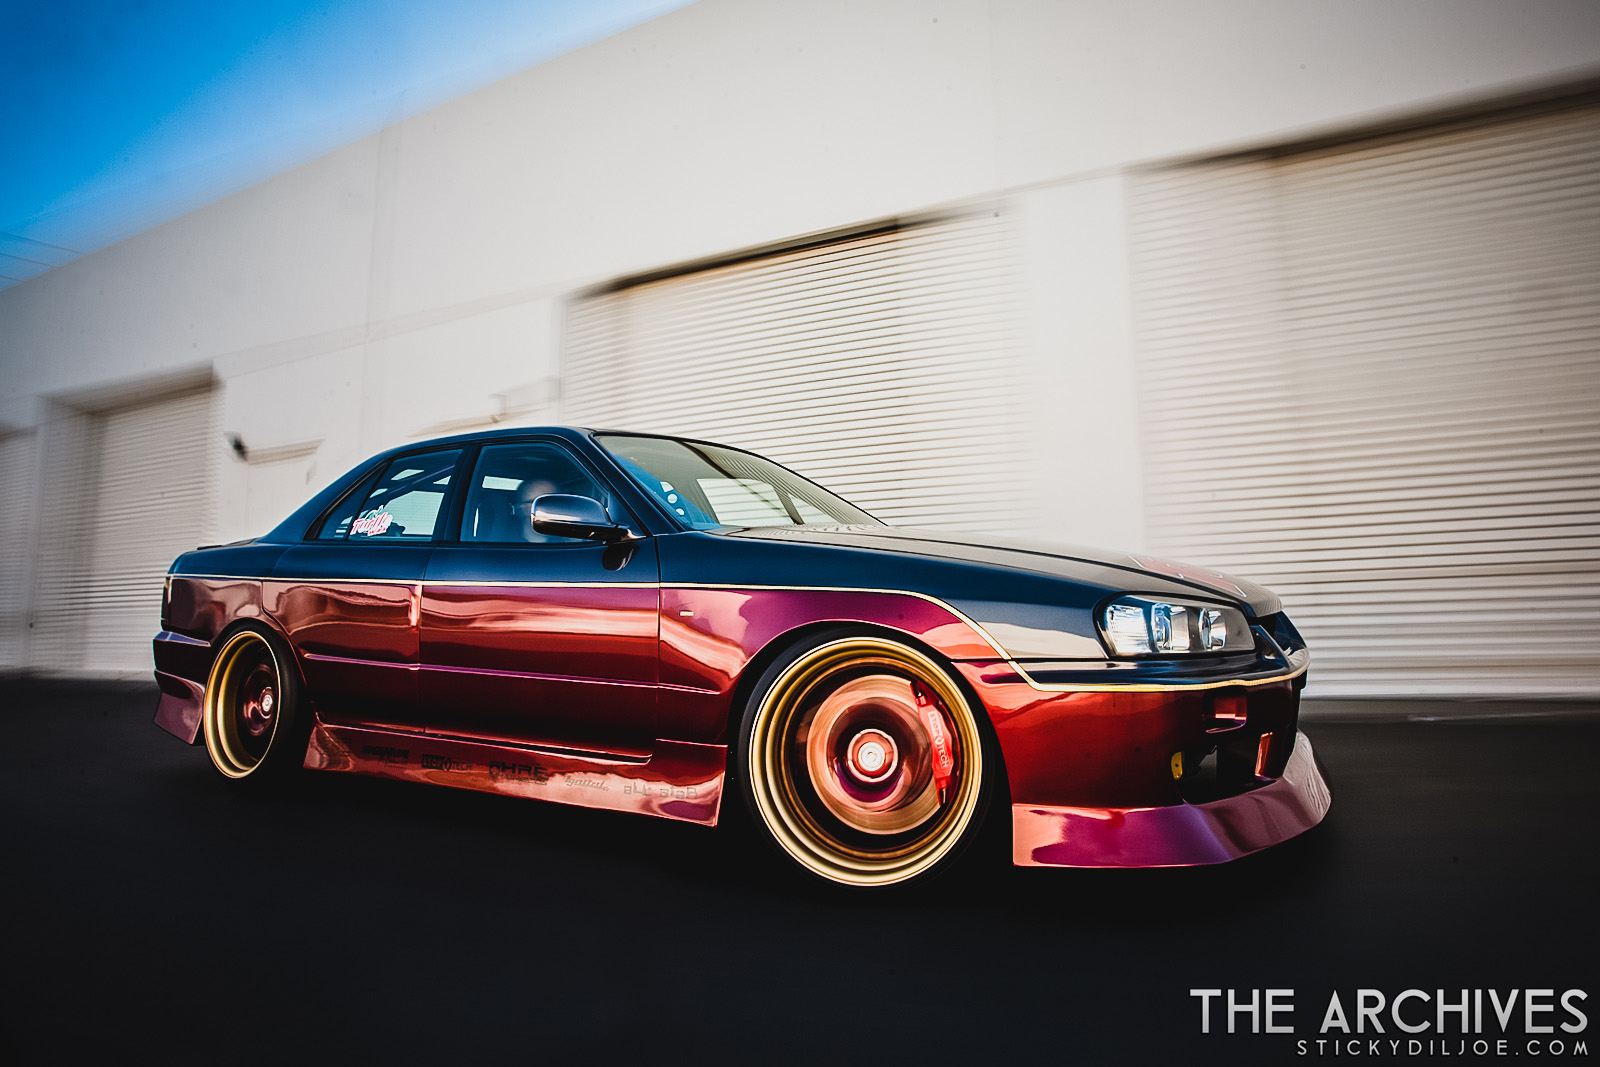 THE ARCHIVES: A Look Back At The Tjin Edition ER34 Skyline…